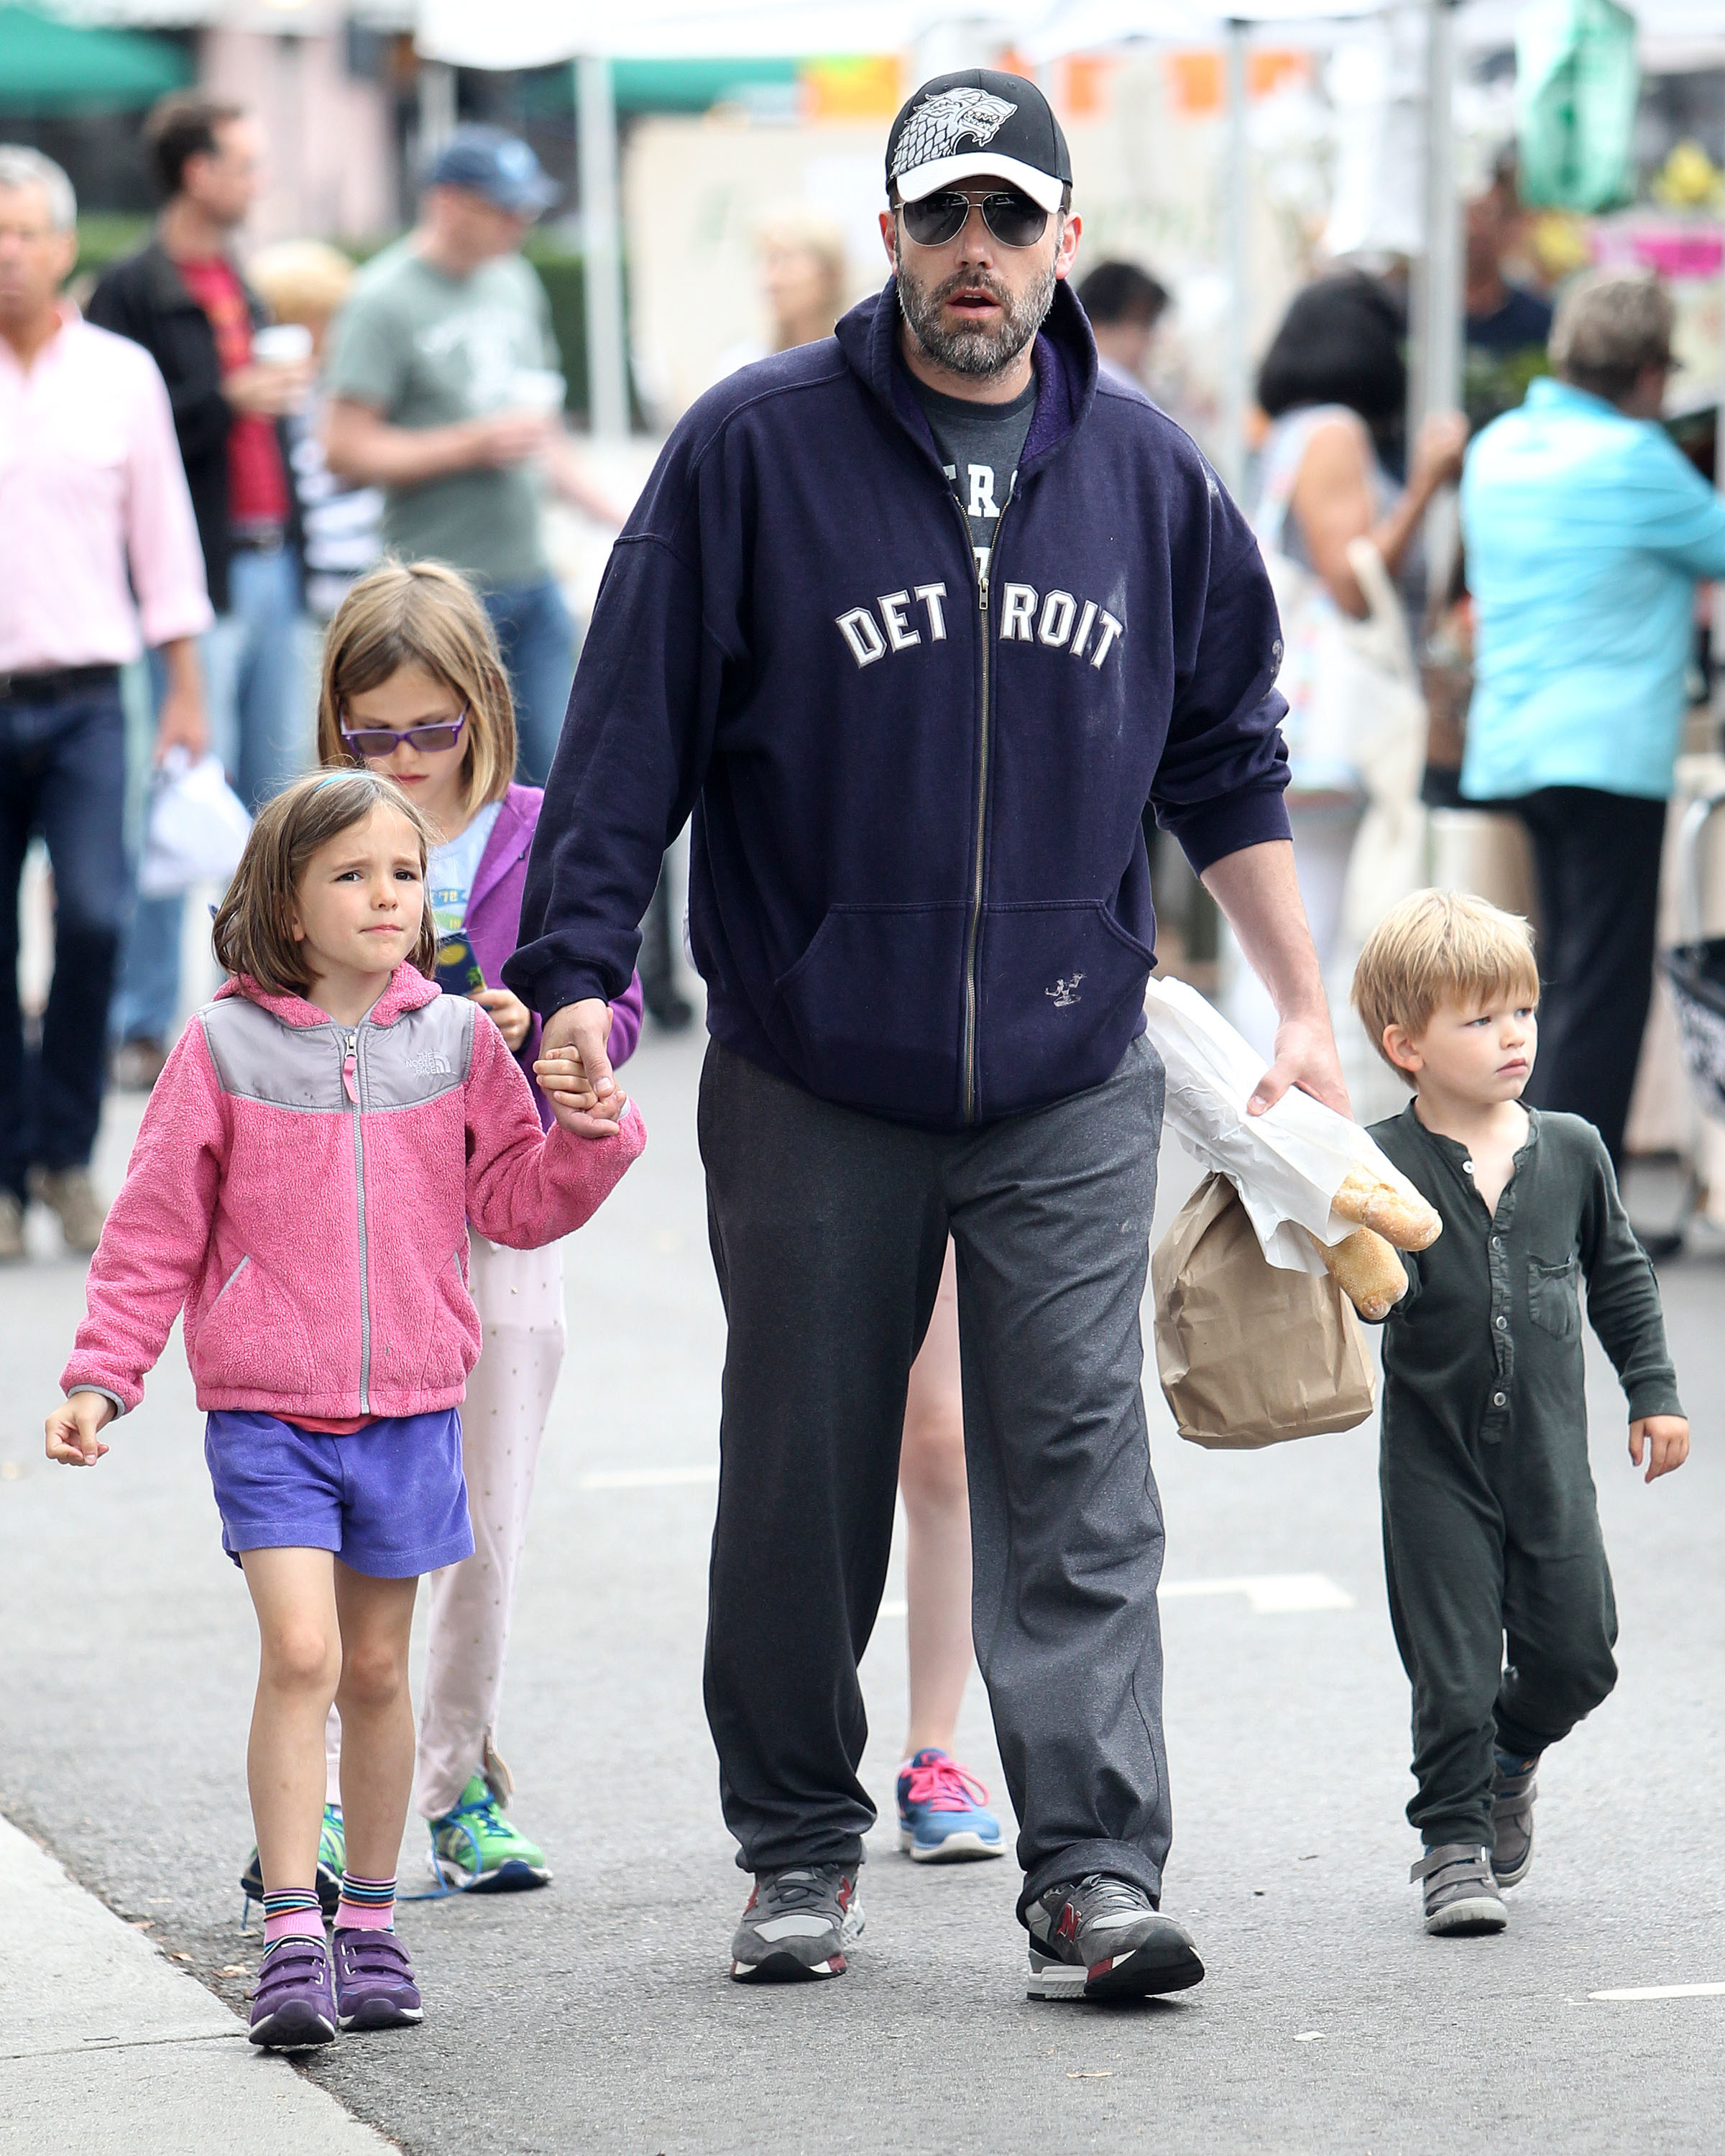 Ben Affleck covers daddy duty while Jennifer Garner works in Atlanta